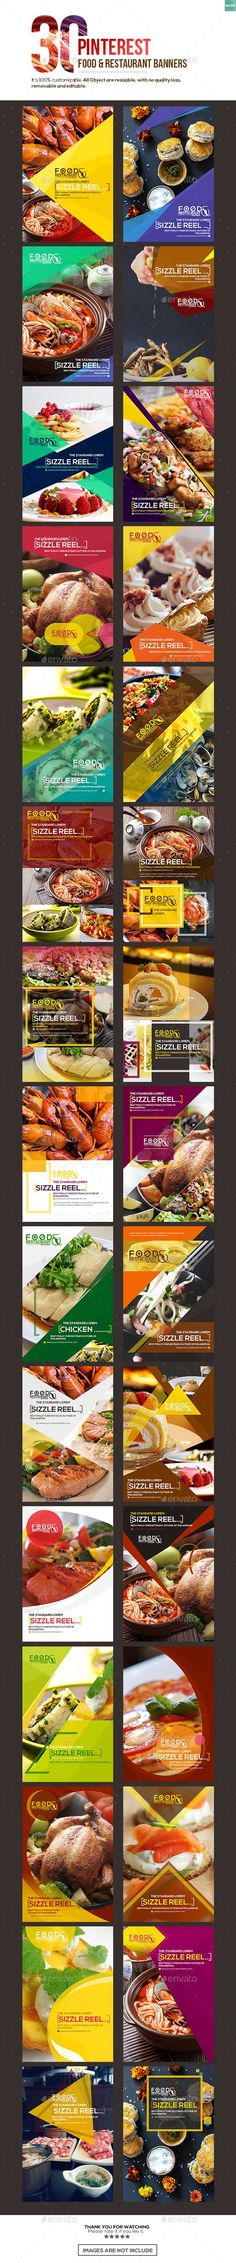 30 pinterest food restaurant banners more